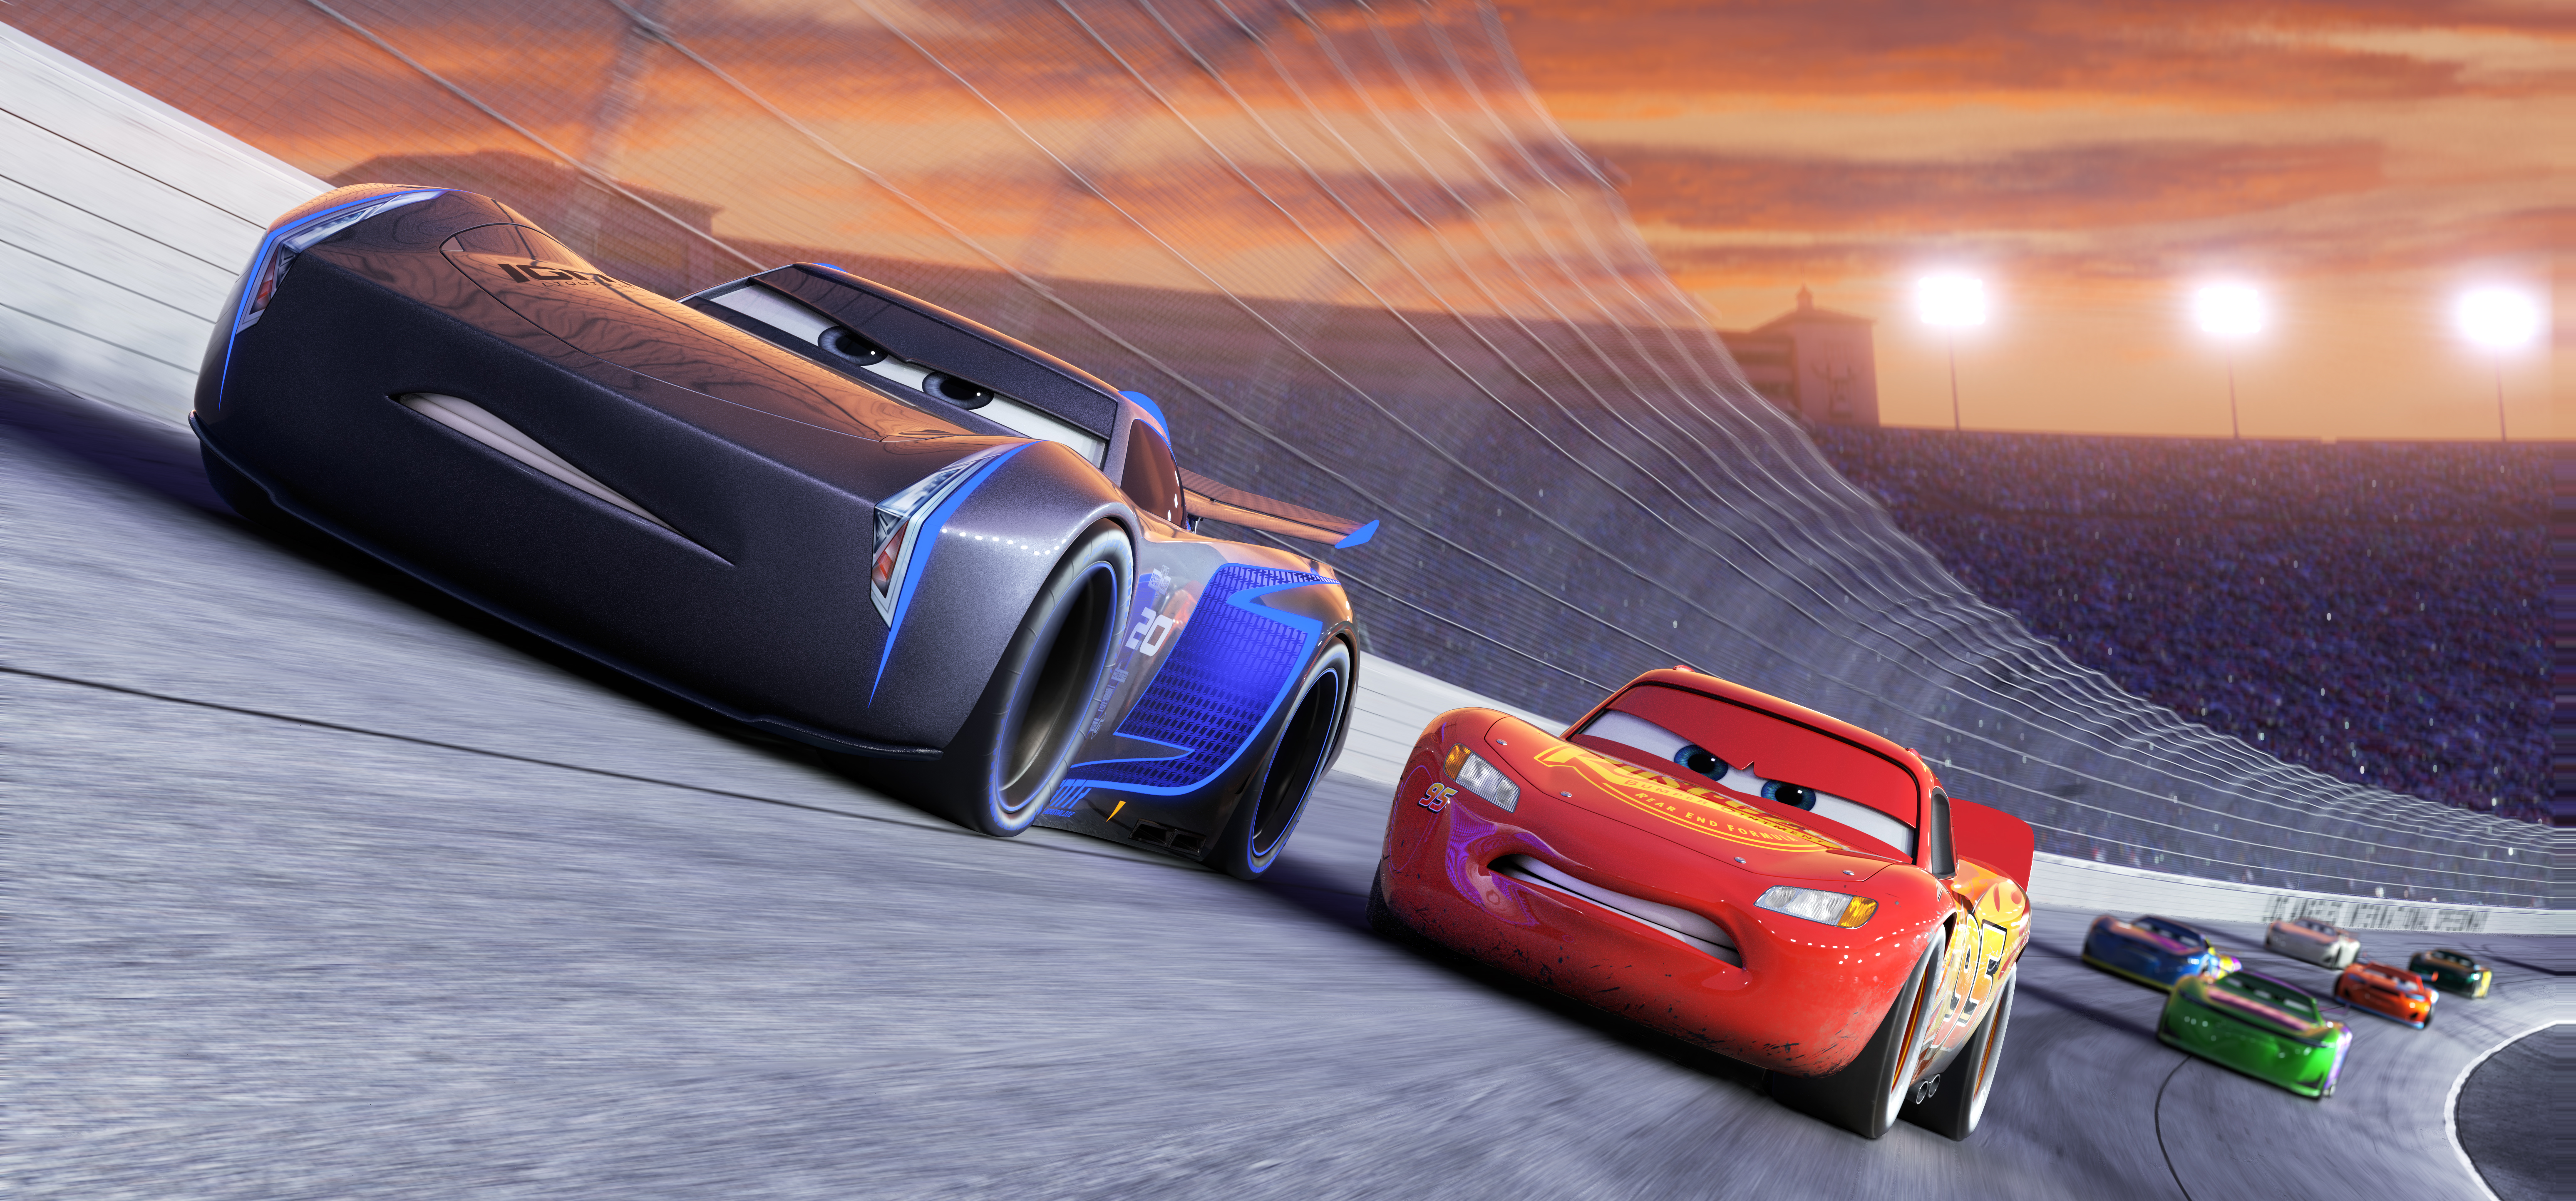 Pixar Pushed Technology to Paint the Cars in \'Cars 3\' - The Walt ...